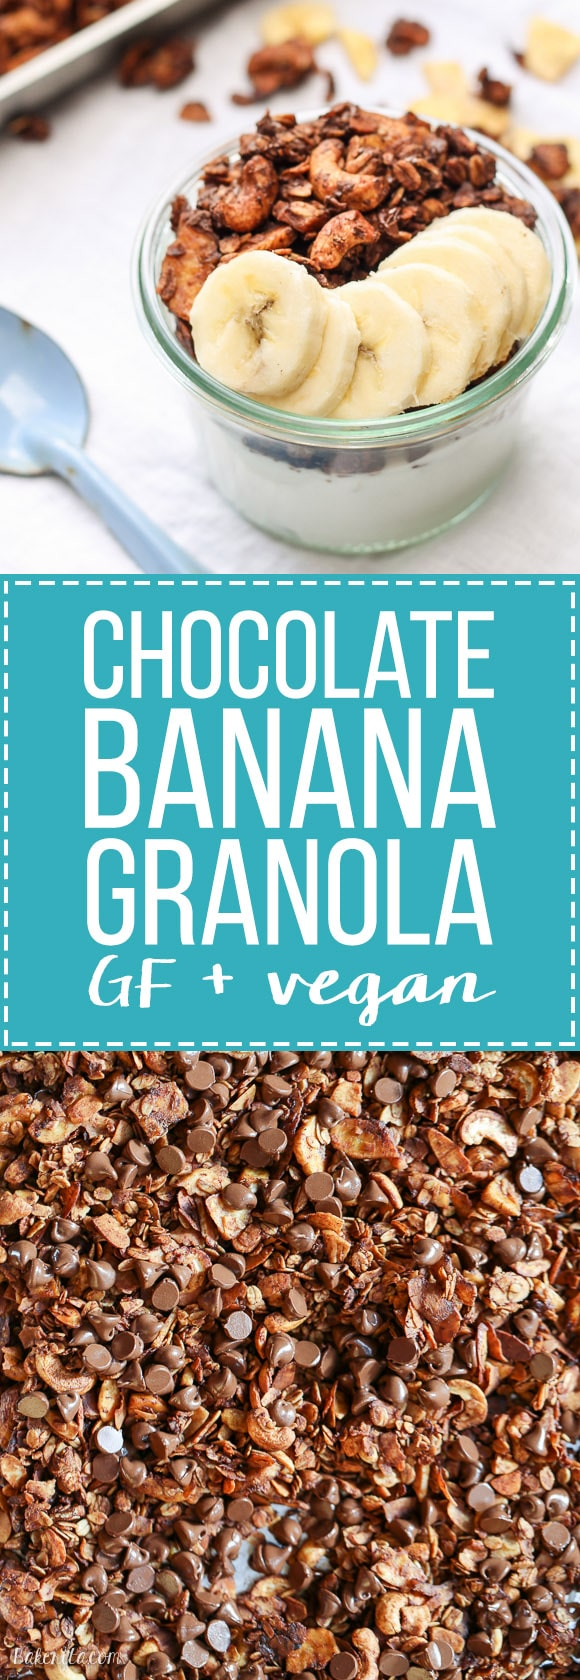 This Chocolate Banana Granola is super chocolatey with mashed banana and banana chips! This gluten-free and vegan granola makes a super addictive snack or breakfast.